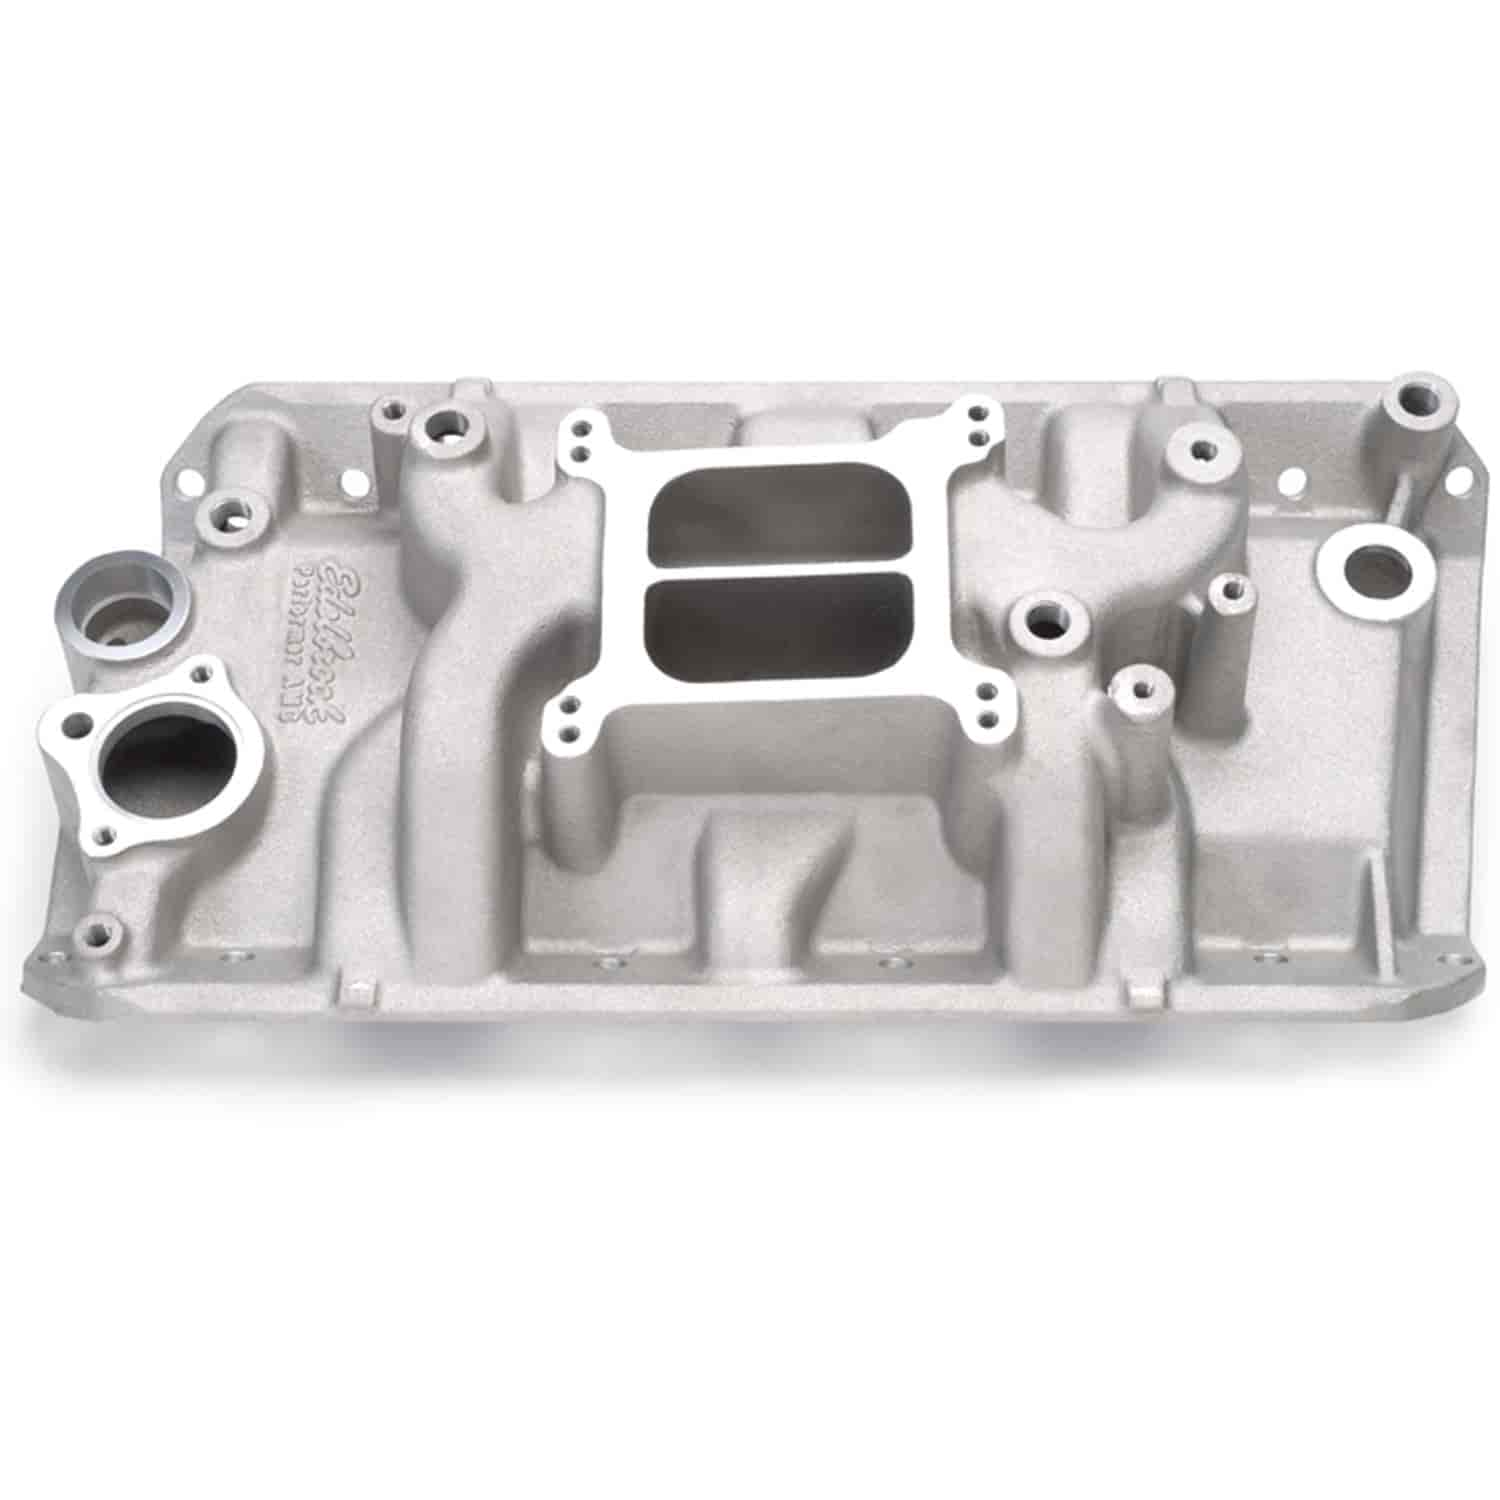 Edelbrock 2131 - Edelbrock Performer Manifolds for AMC